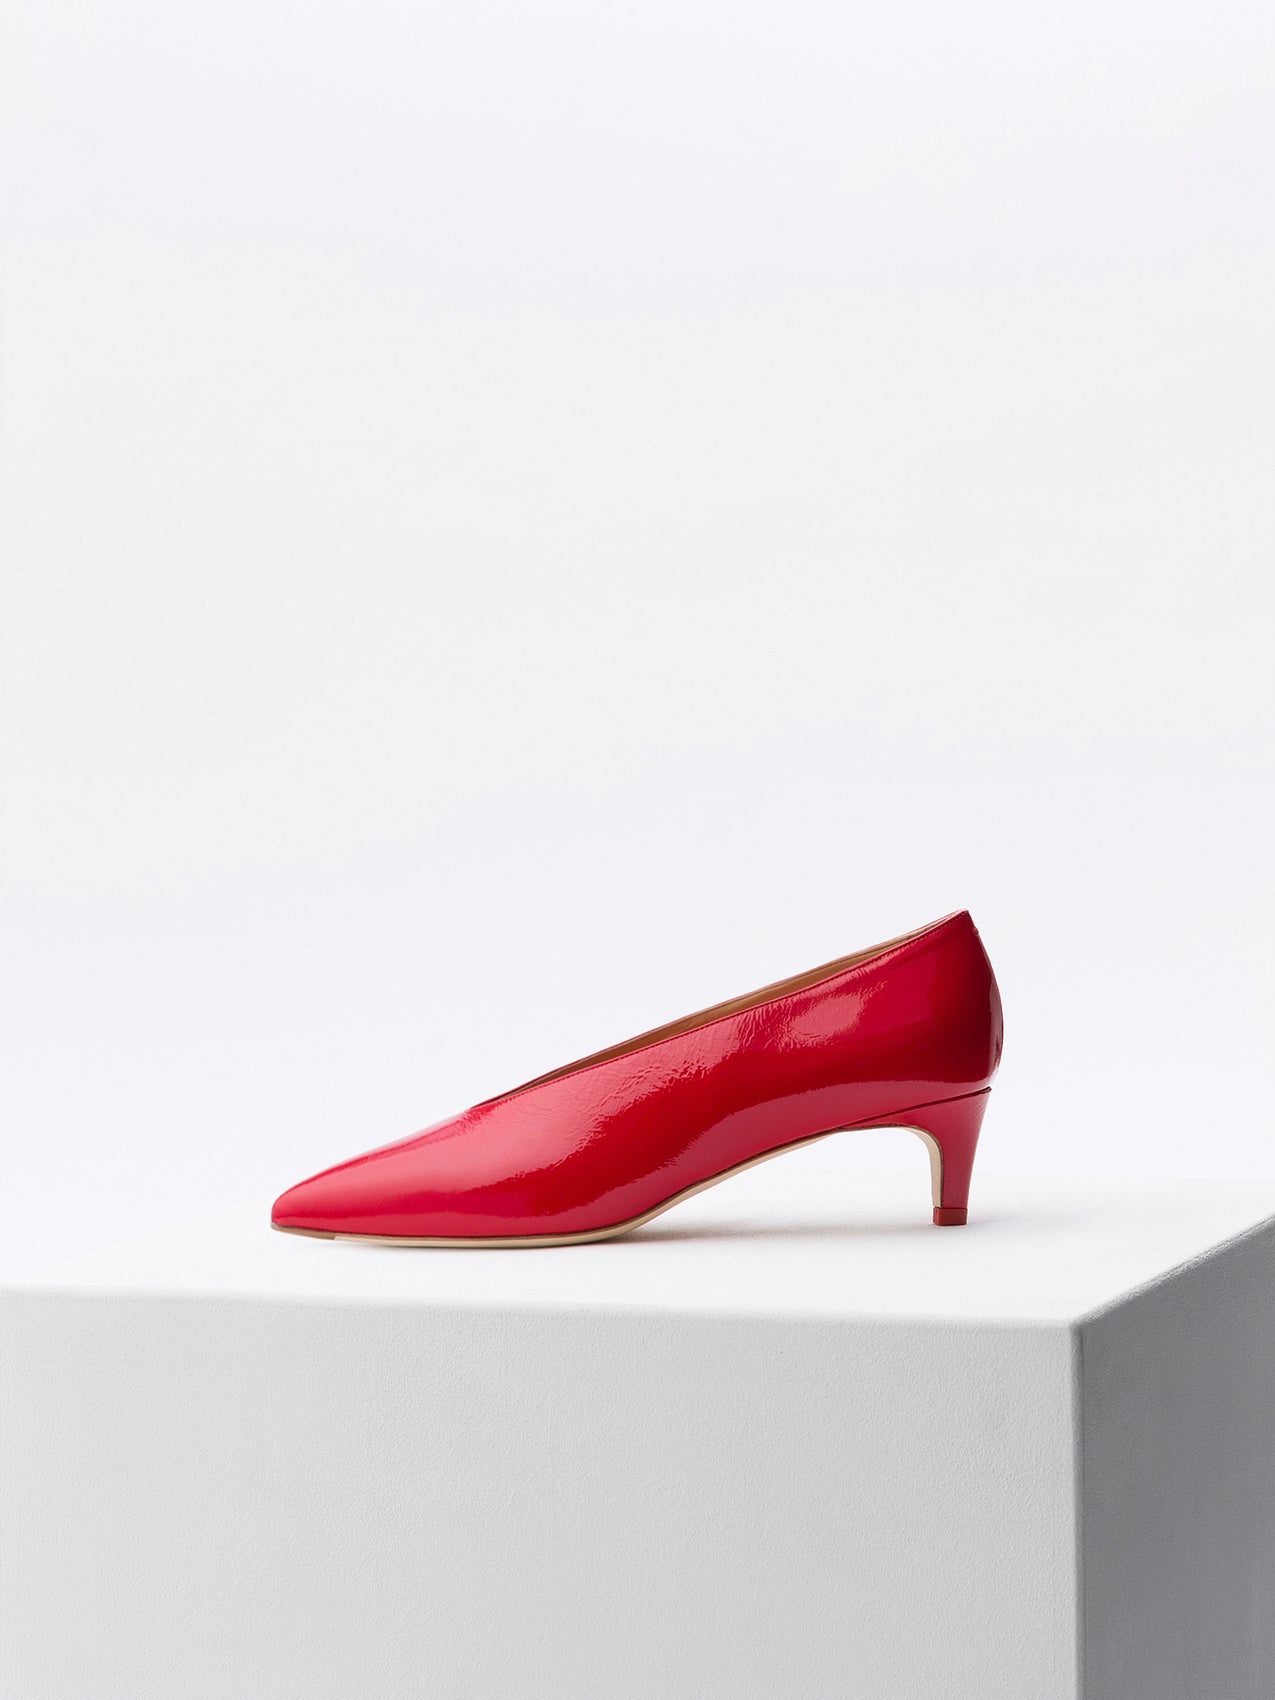 Aeyde Camilla Red Crackle Patent Camilla Aeyde Red Crackle orxedCBWQ